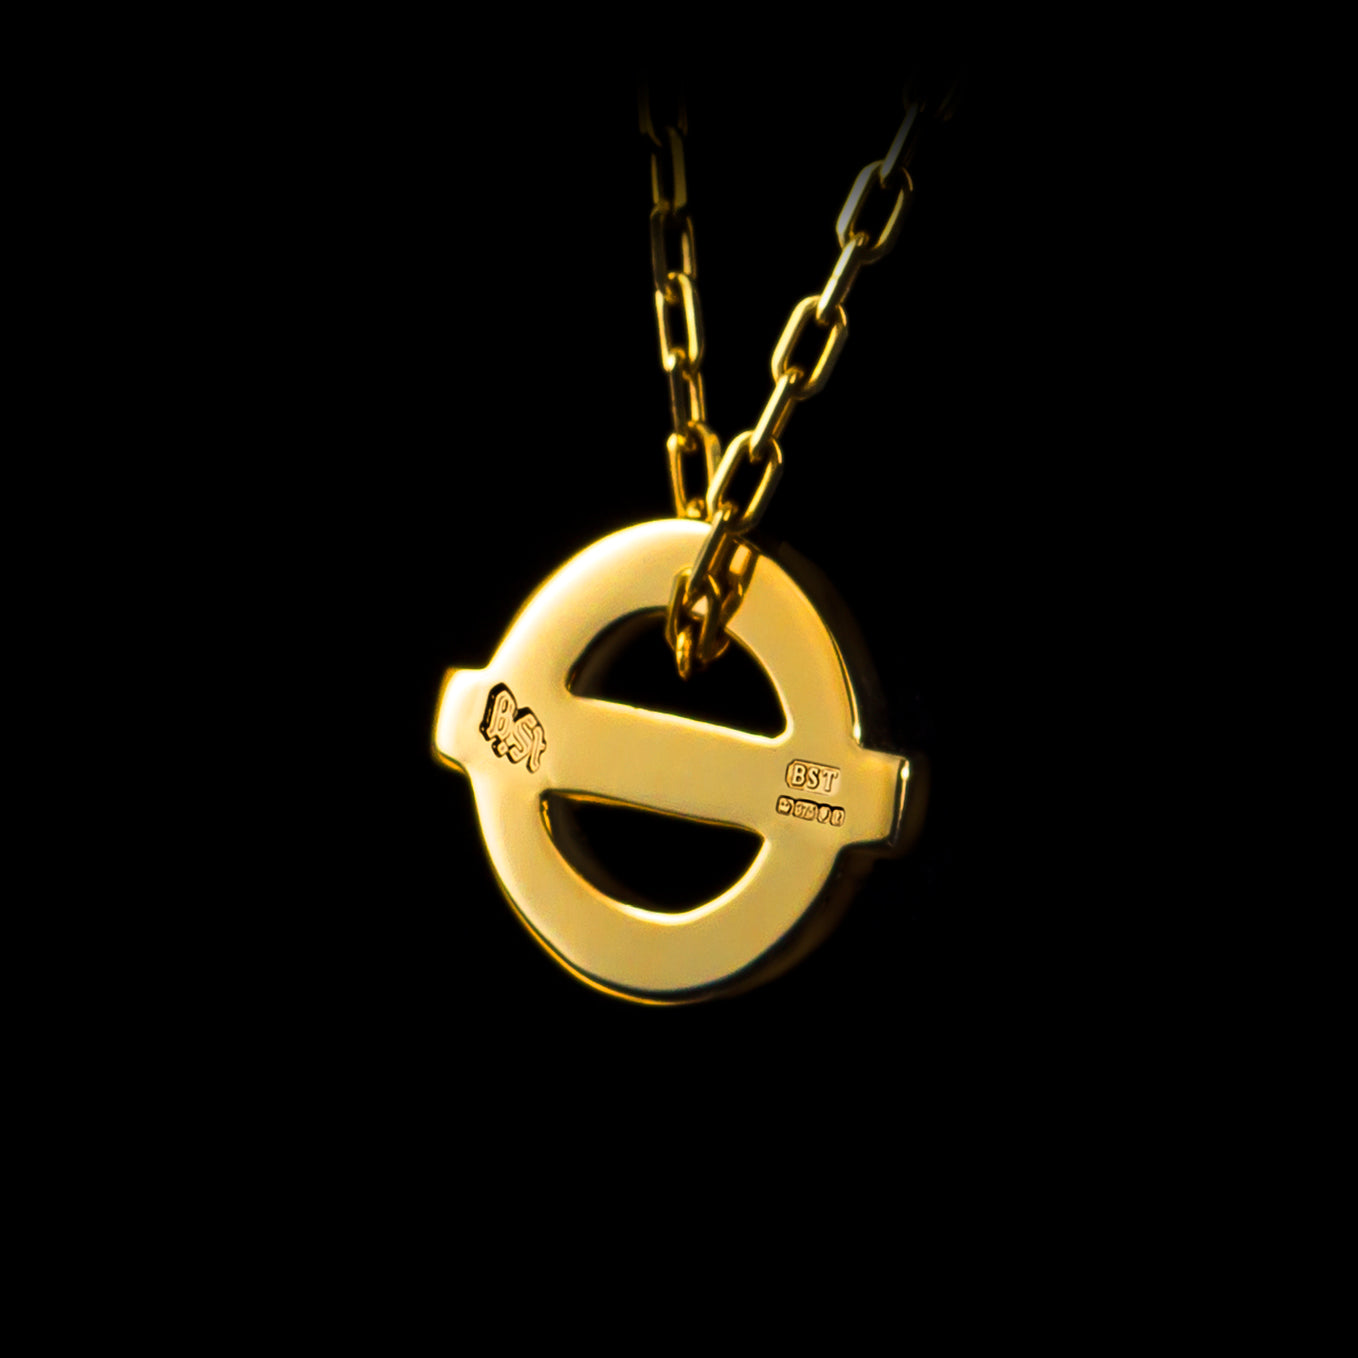 9ct Solid Gold Baker St. Pendant